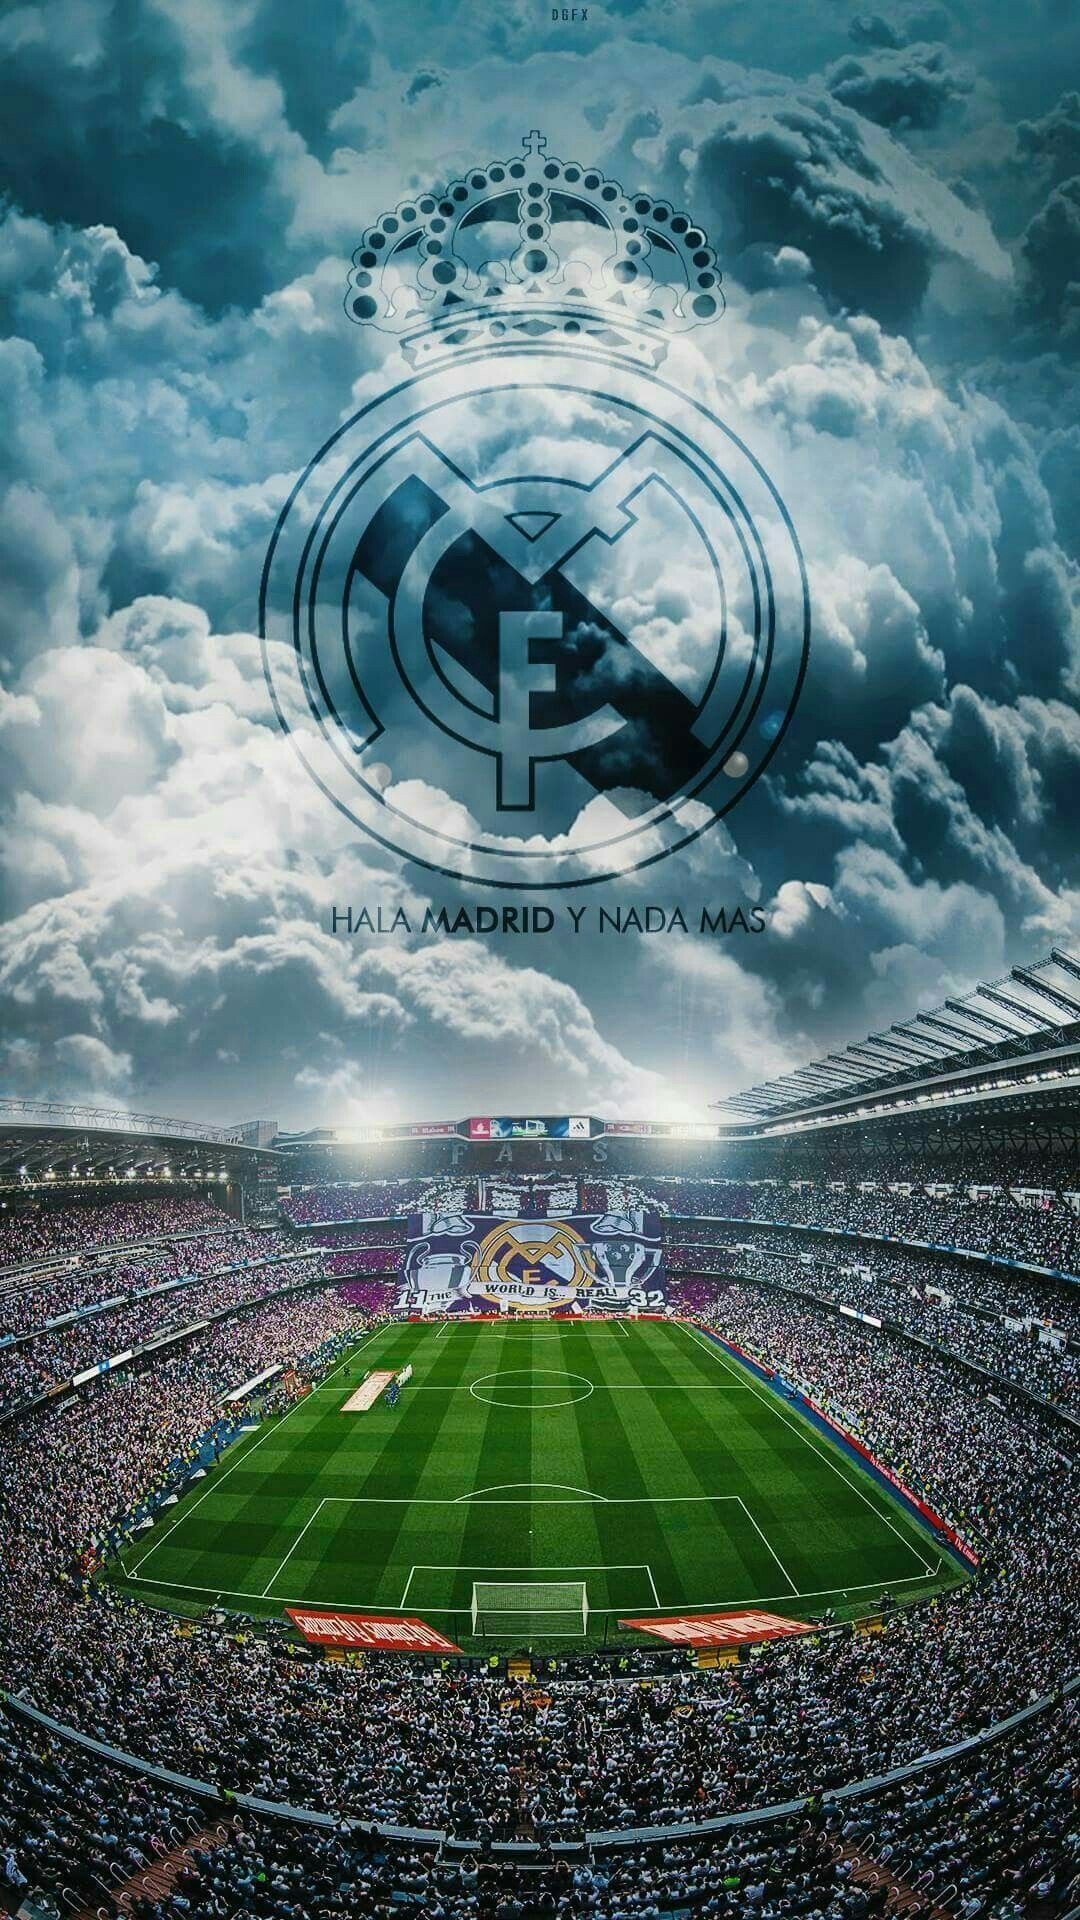 Champions League Real Madrid Wallpaper Hd In 2020 Madrid Wallpaper Real Madrid Wallpapers Real Madrid Soccer